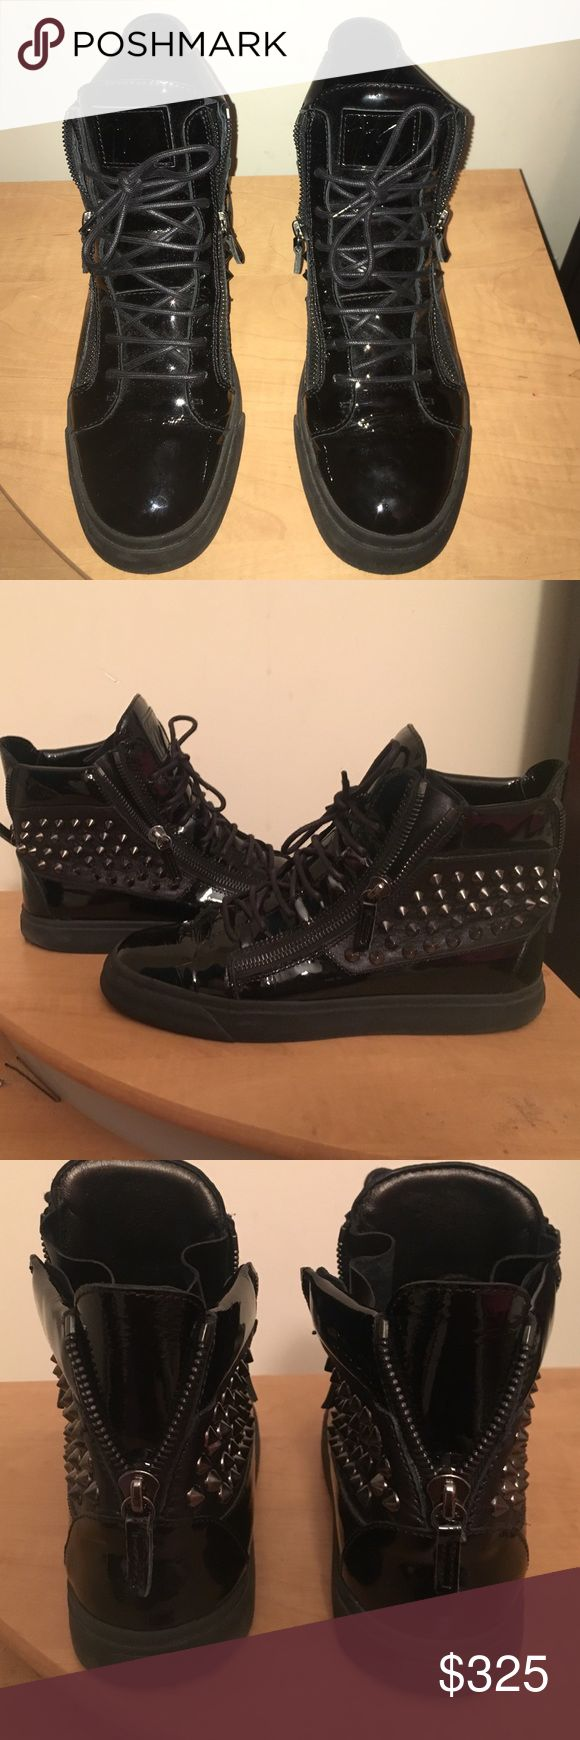 Men's Patent Leather Studded Sneakers AUTHENTIC Men's Giuseppe Zanotti Patent Leather Sneakers .. Worn Twice ! A little to small for my boyfriend so he's looking to get rid of them. His Loss Your Gain! Dope Shoes 🔥 Giuseppe Zanotti Shoes Sneakers